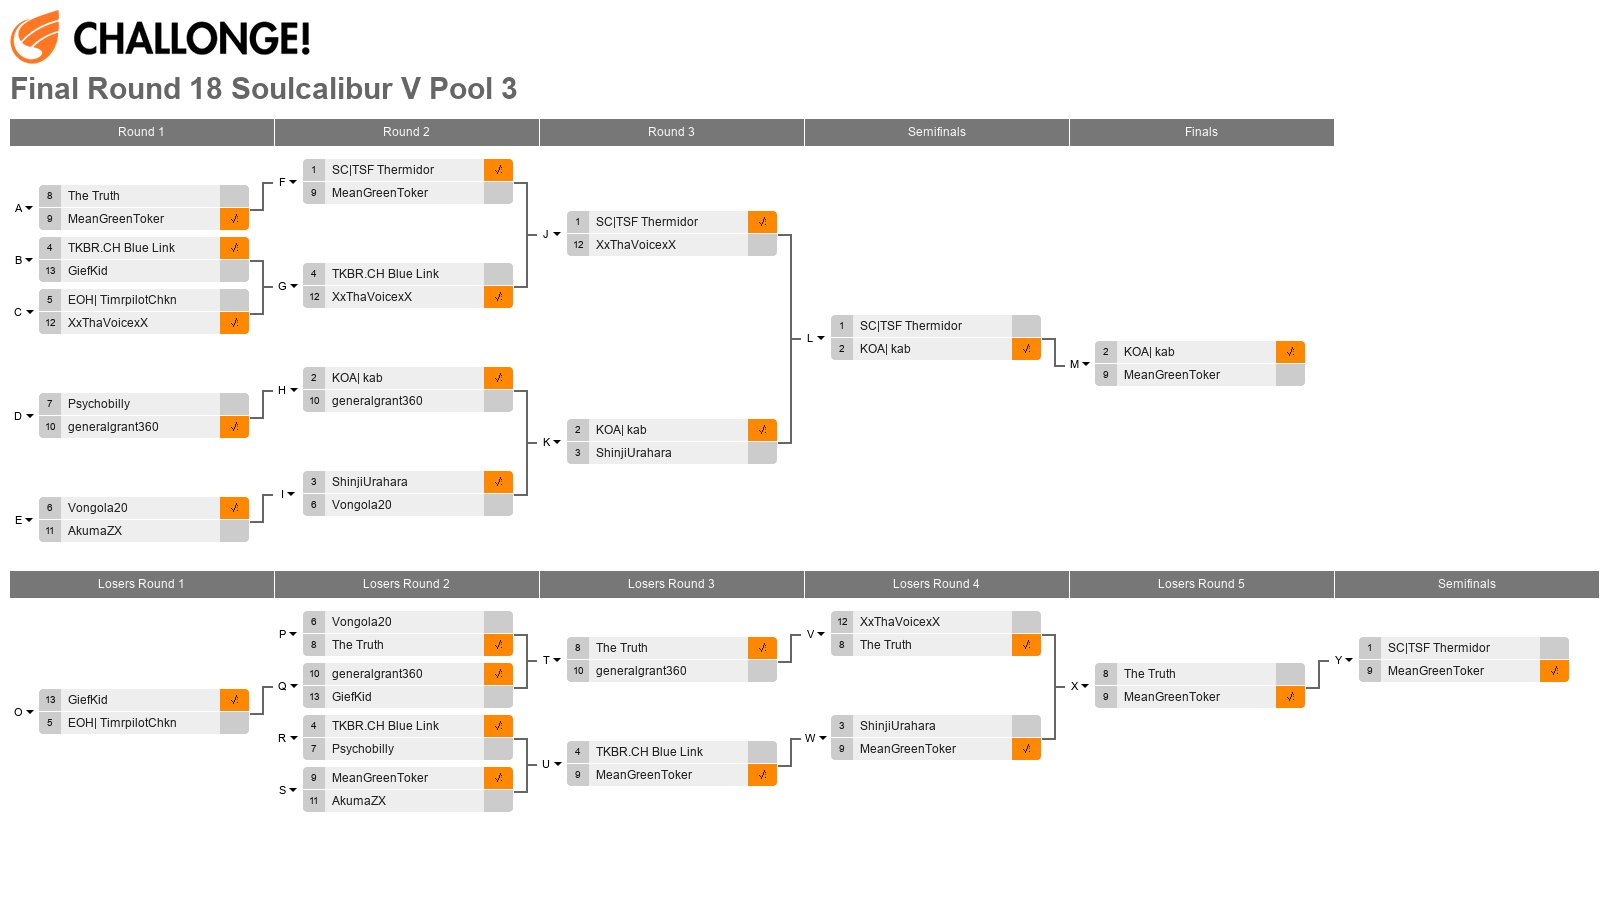 Final Round 18 Soulcalibur V Pool 3